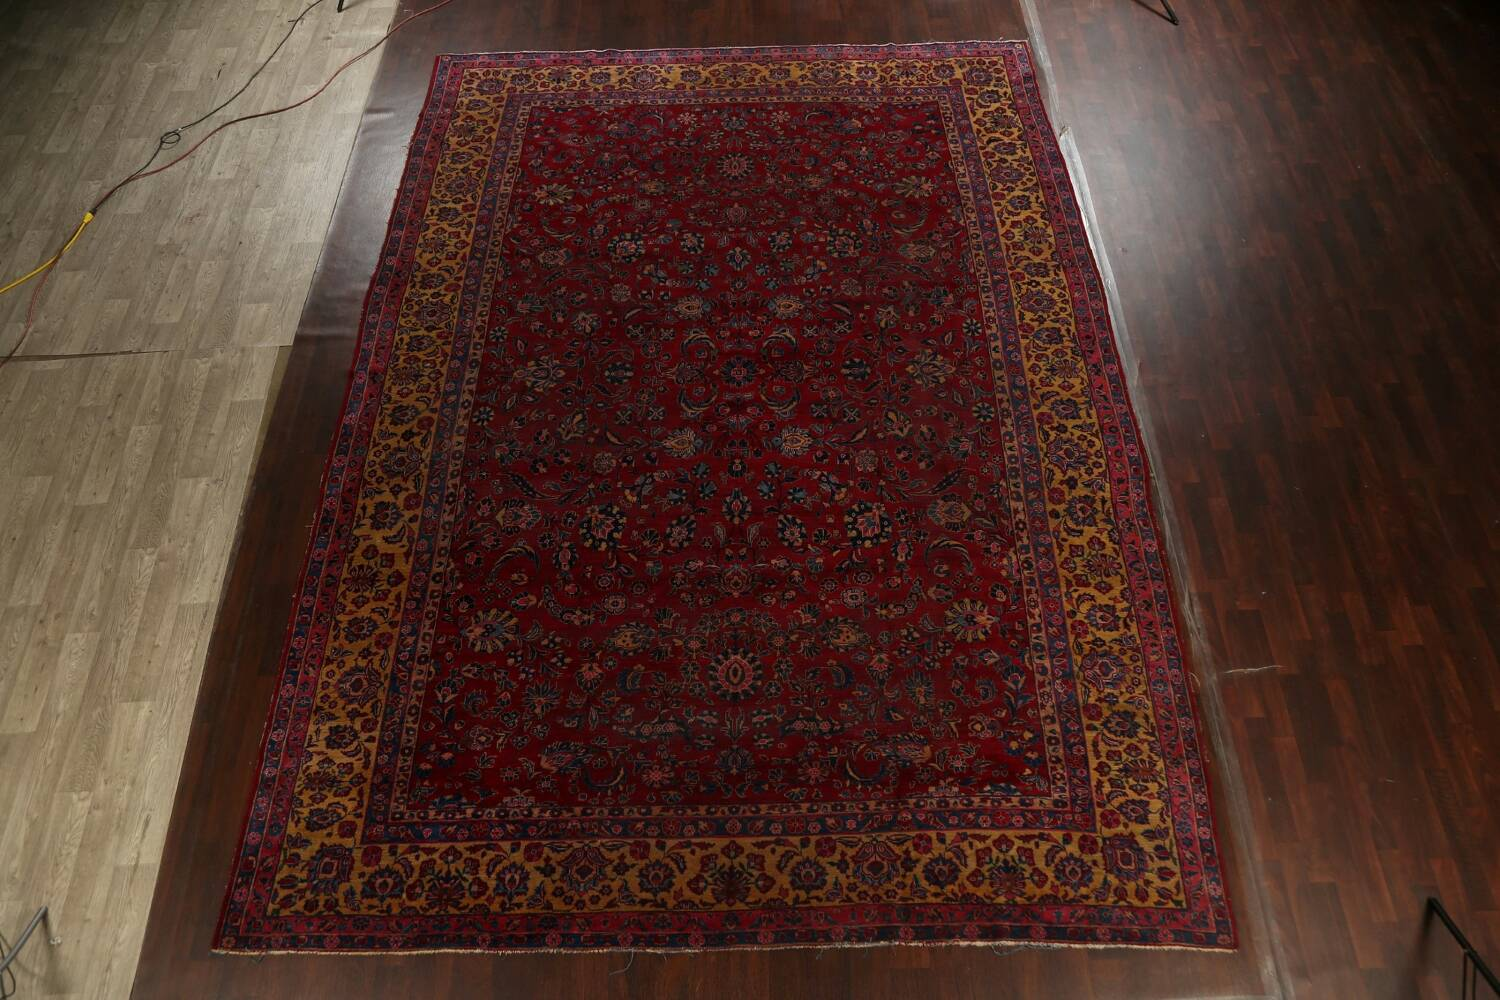 Pre-1900 Antique Vegetable Dye Sarouk Persian Area Rug 11x15 image 2